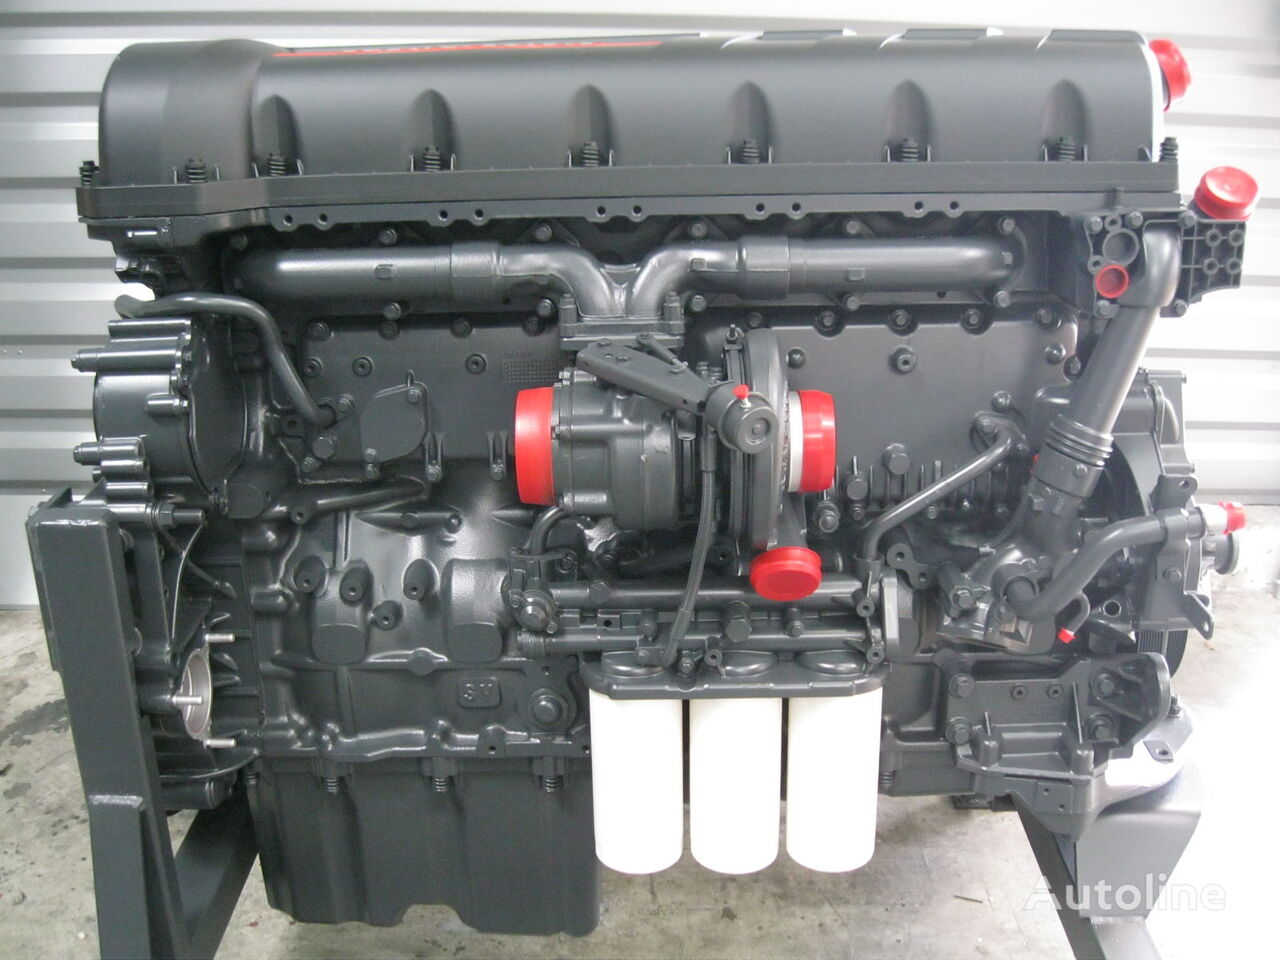 novi RENAULT TRUCKS motor za RENAULT ALL VERSIONS kamiona